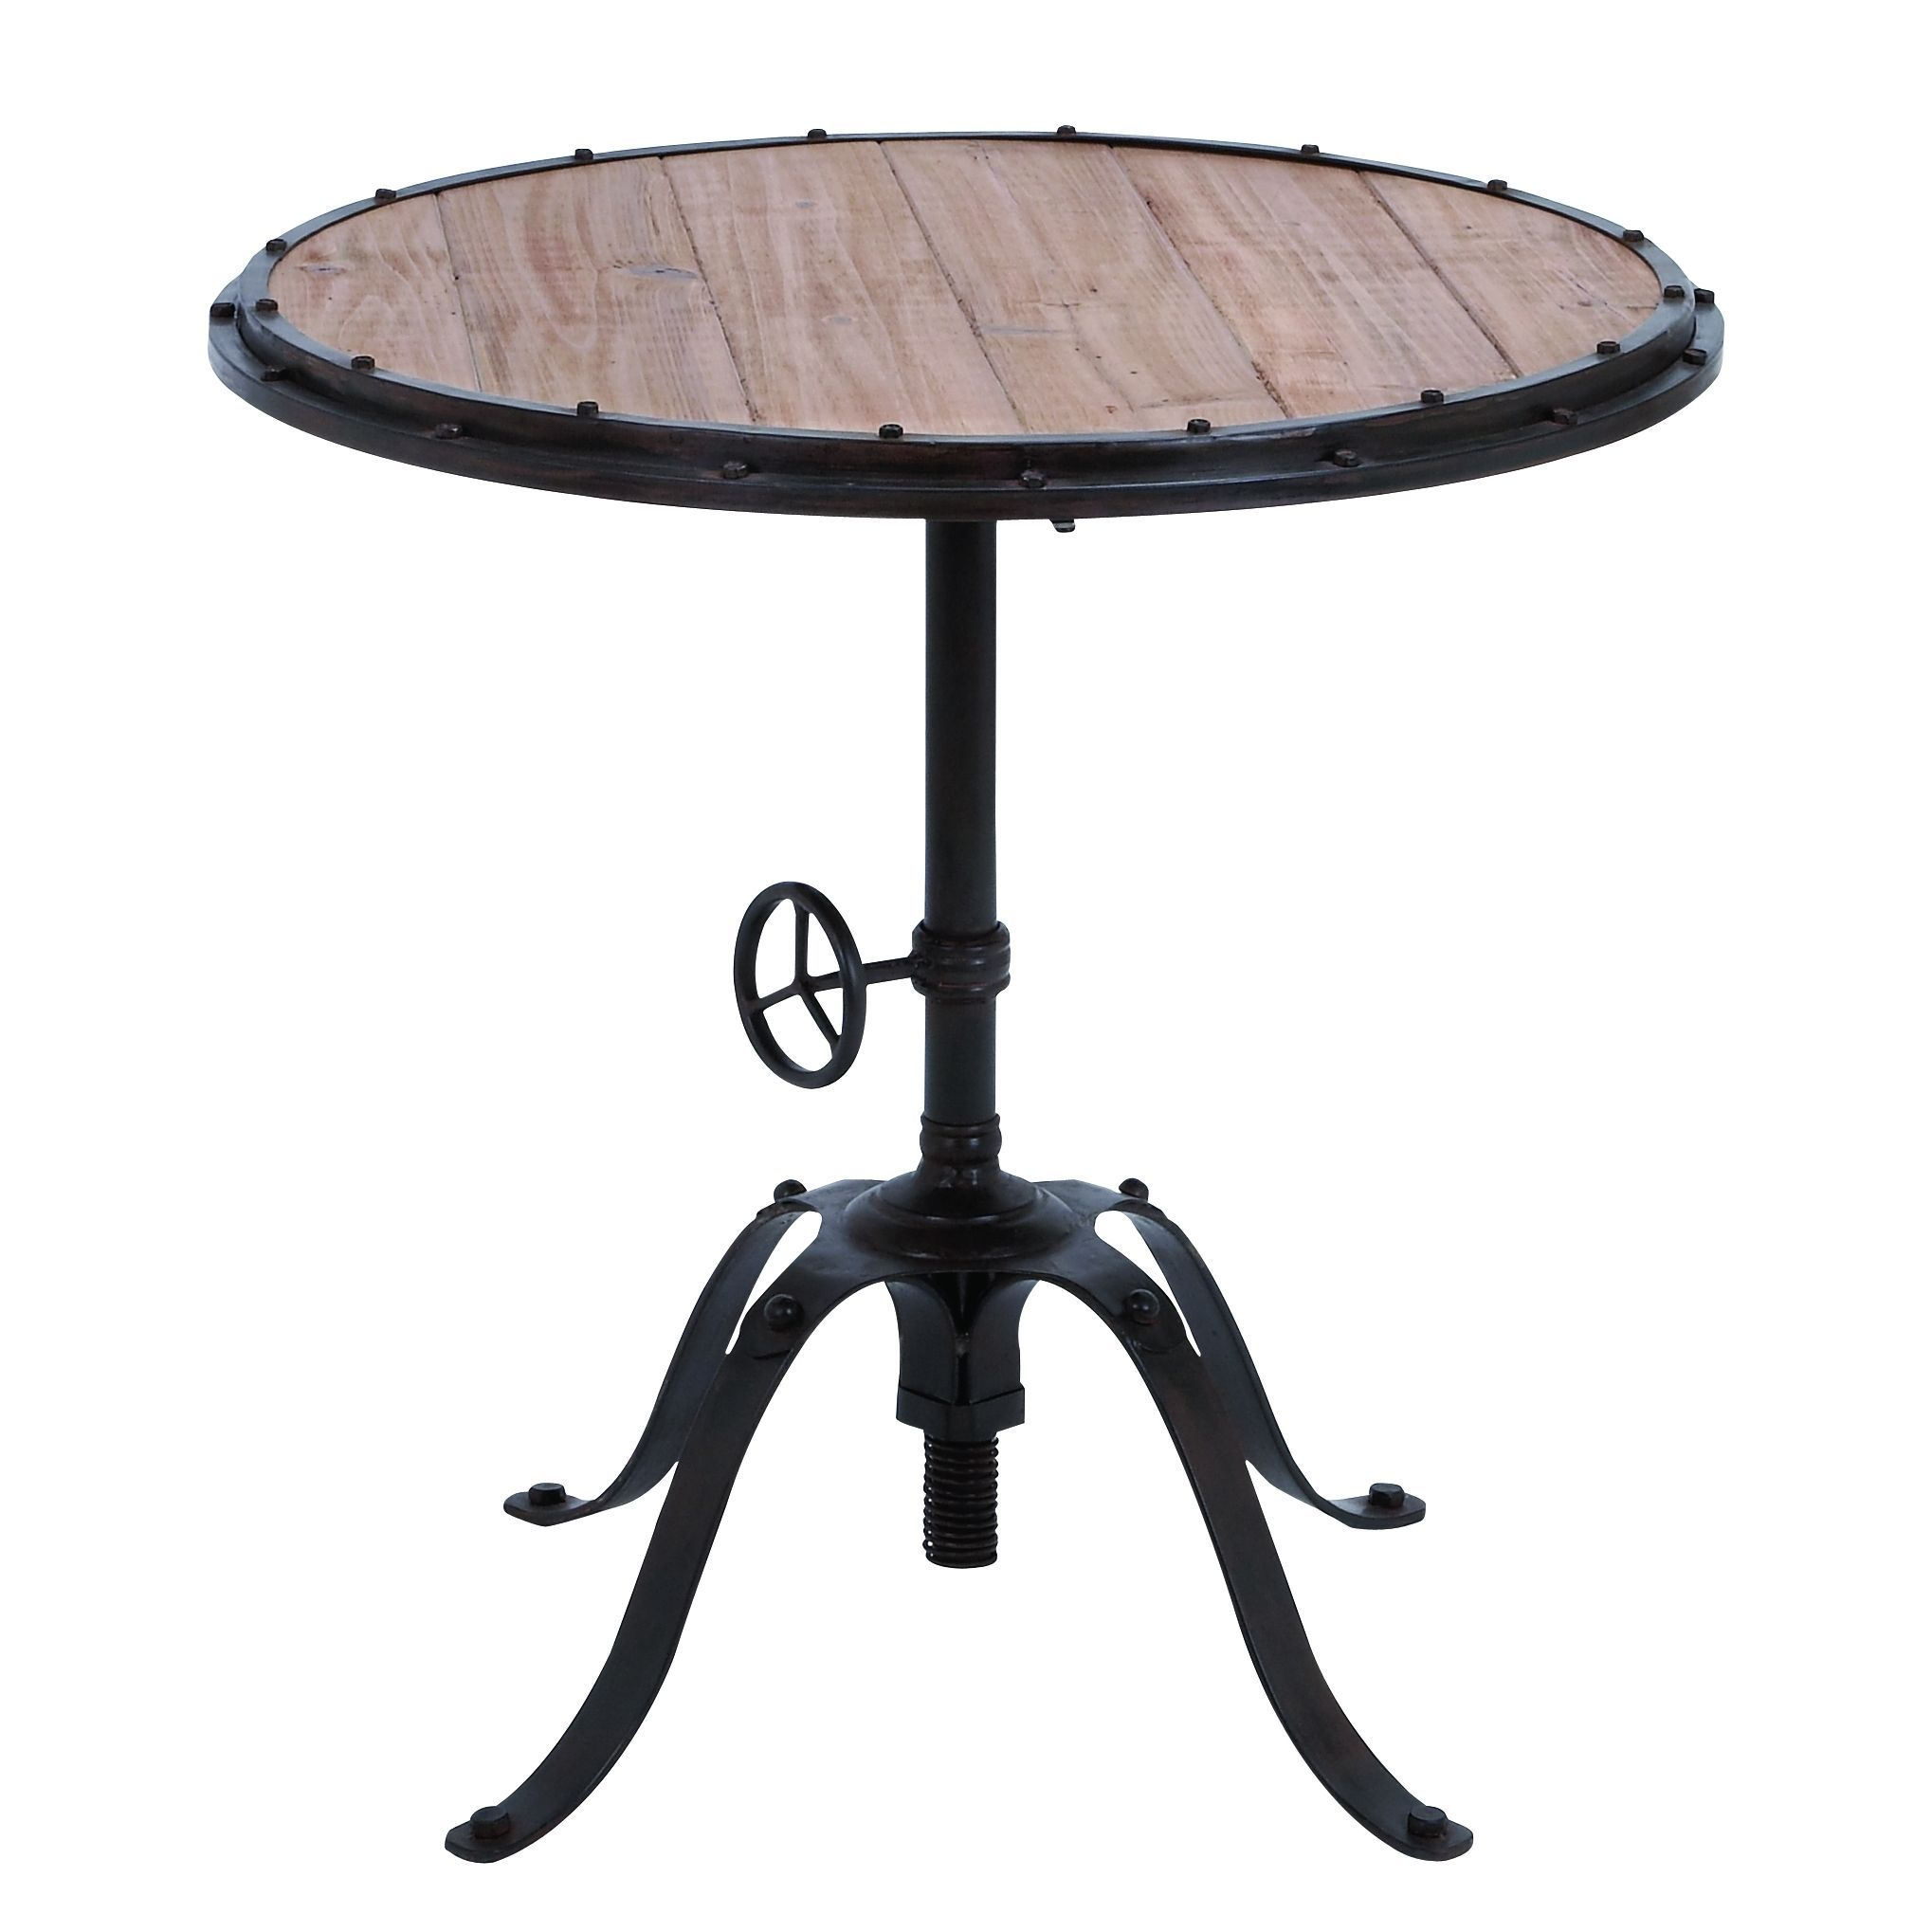 Studio 350 Accent Collection Black Distressed Metal And Wood 30 Inch Round Table